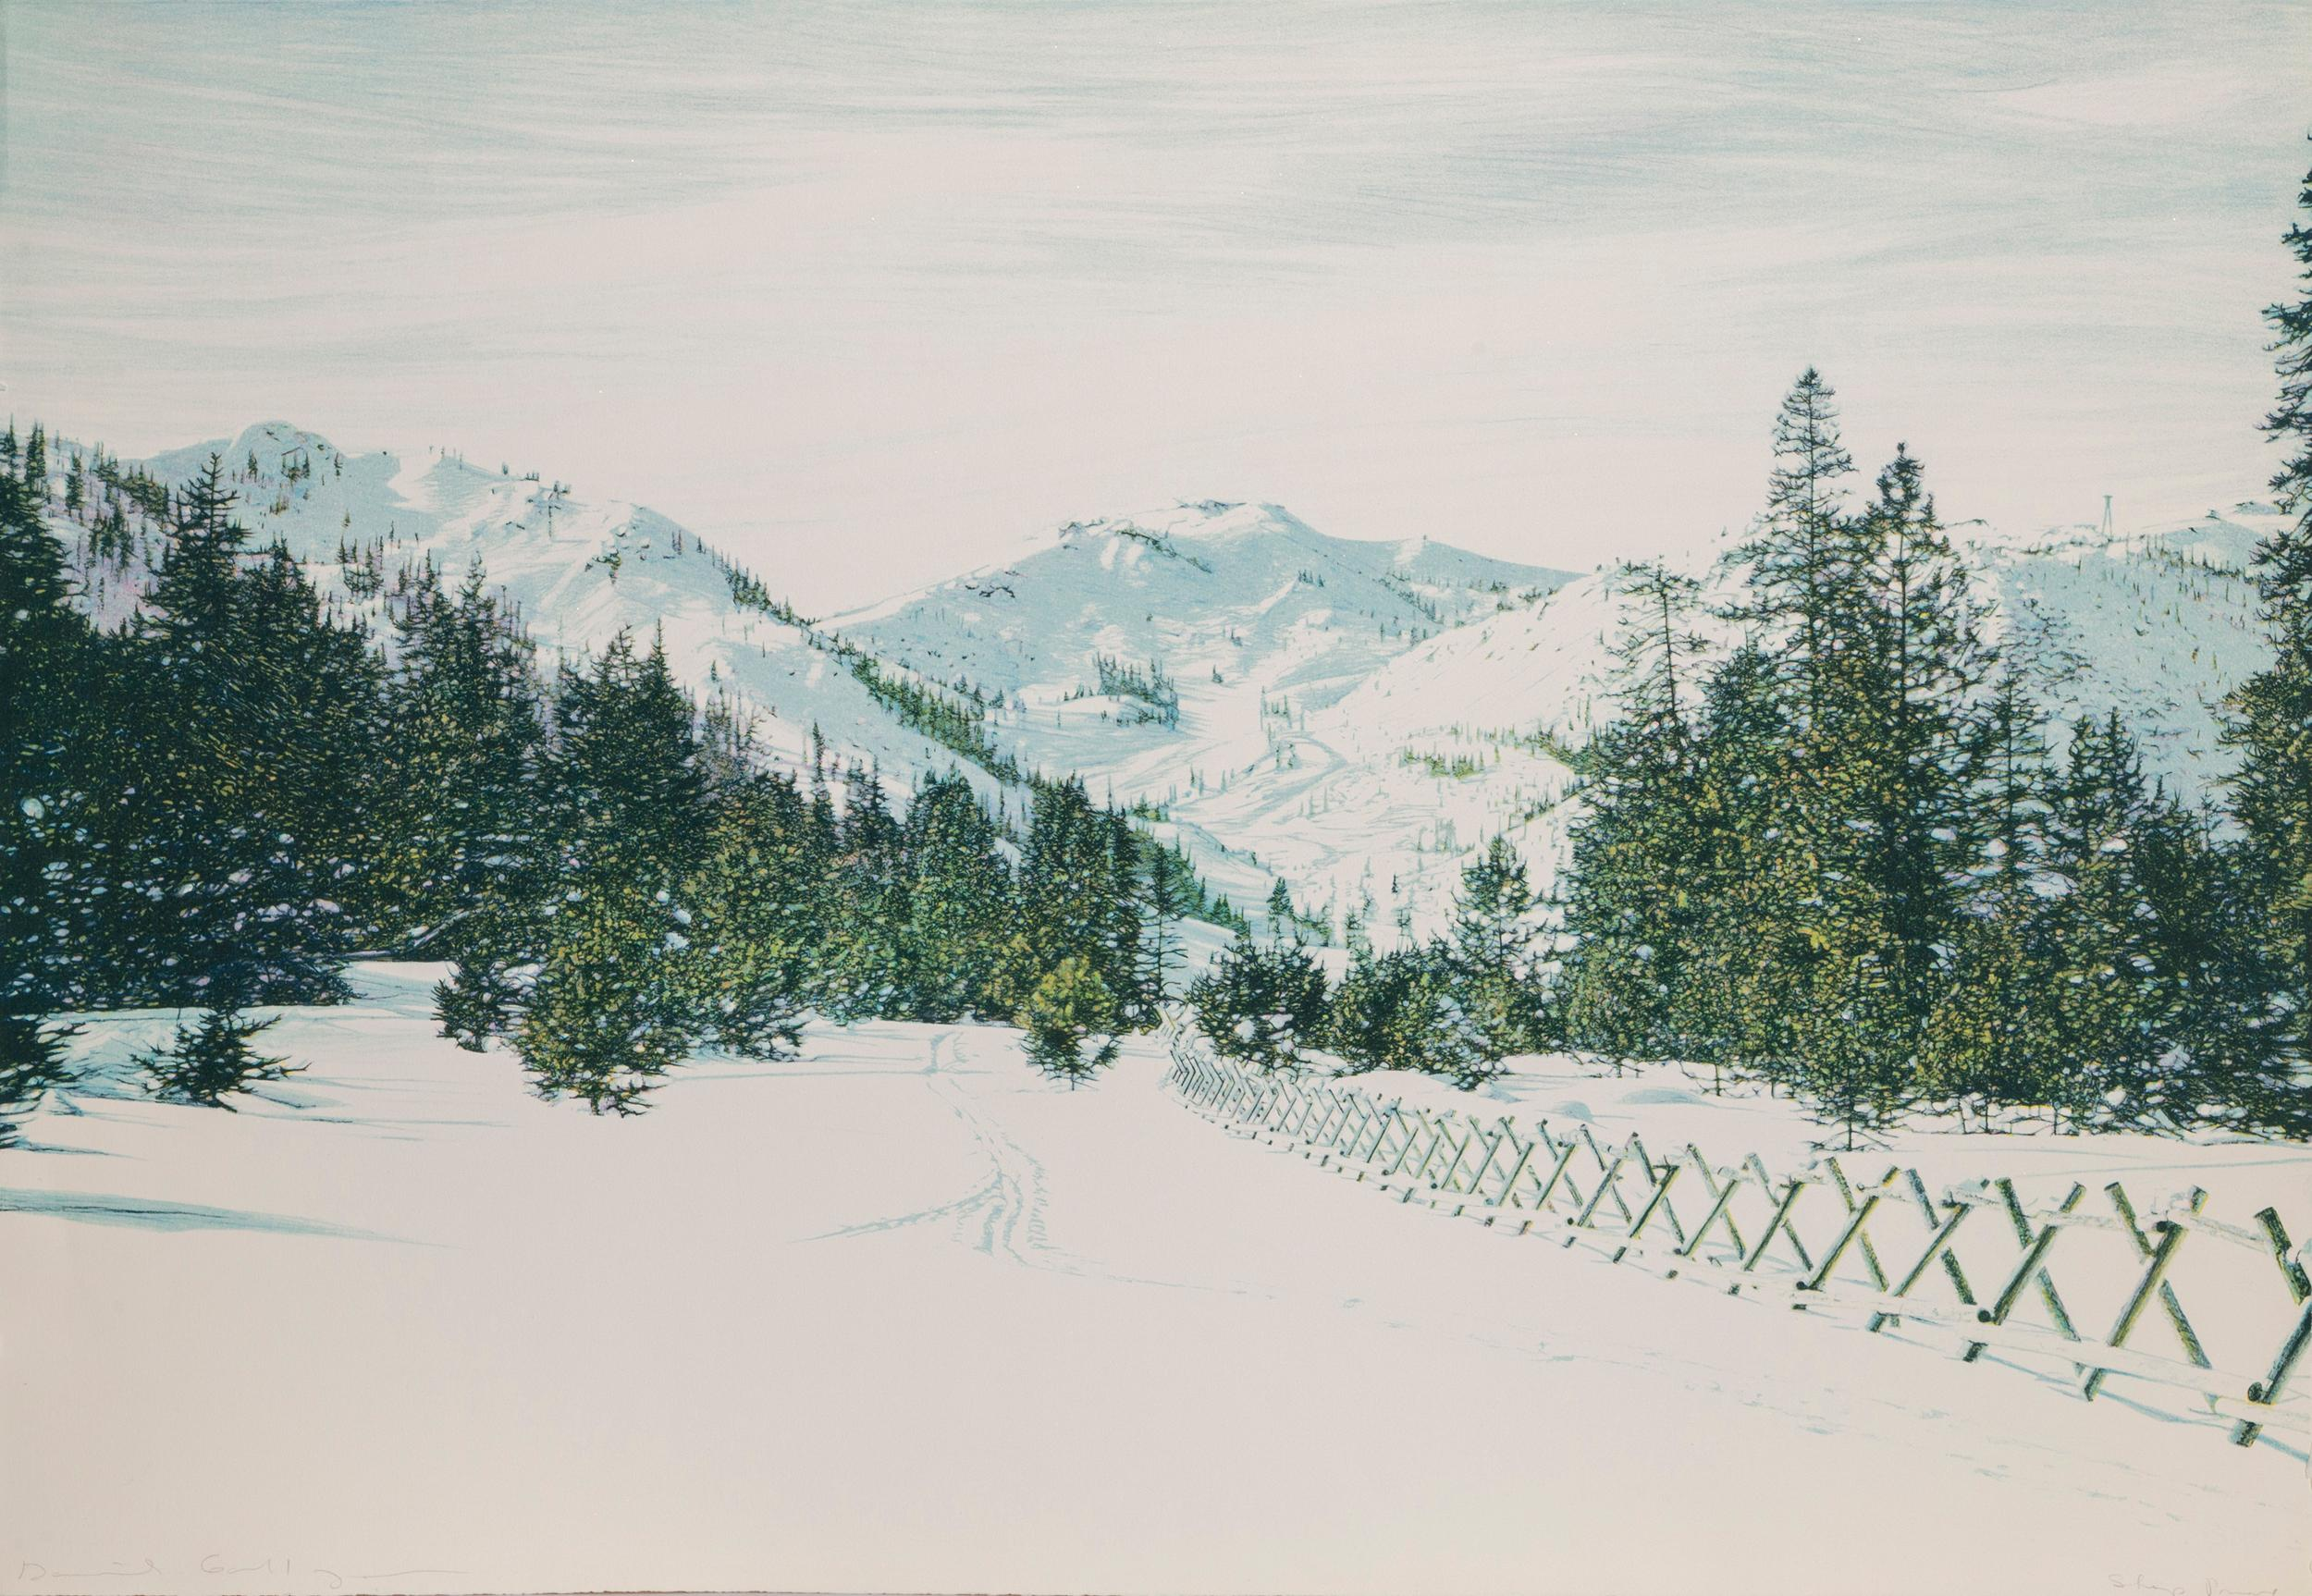 David Maes Gallegos, Squaw Valley, Lithograph